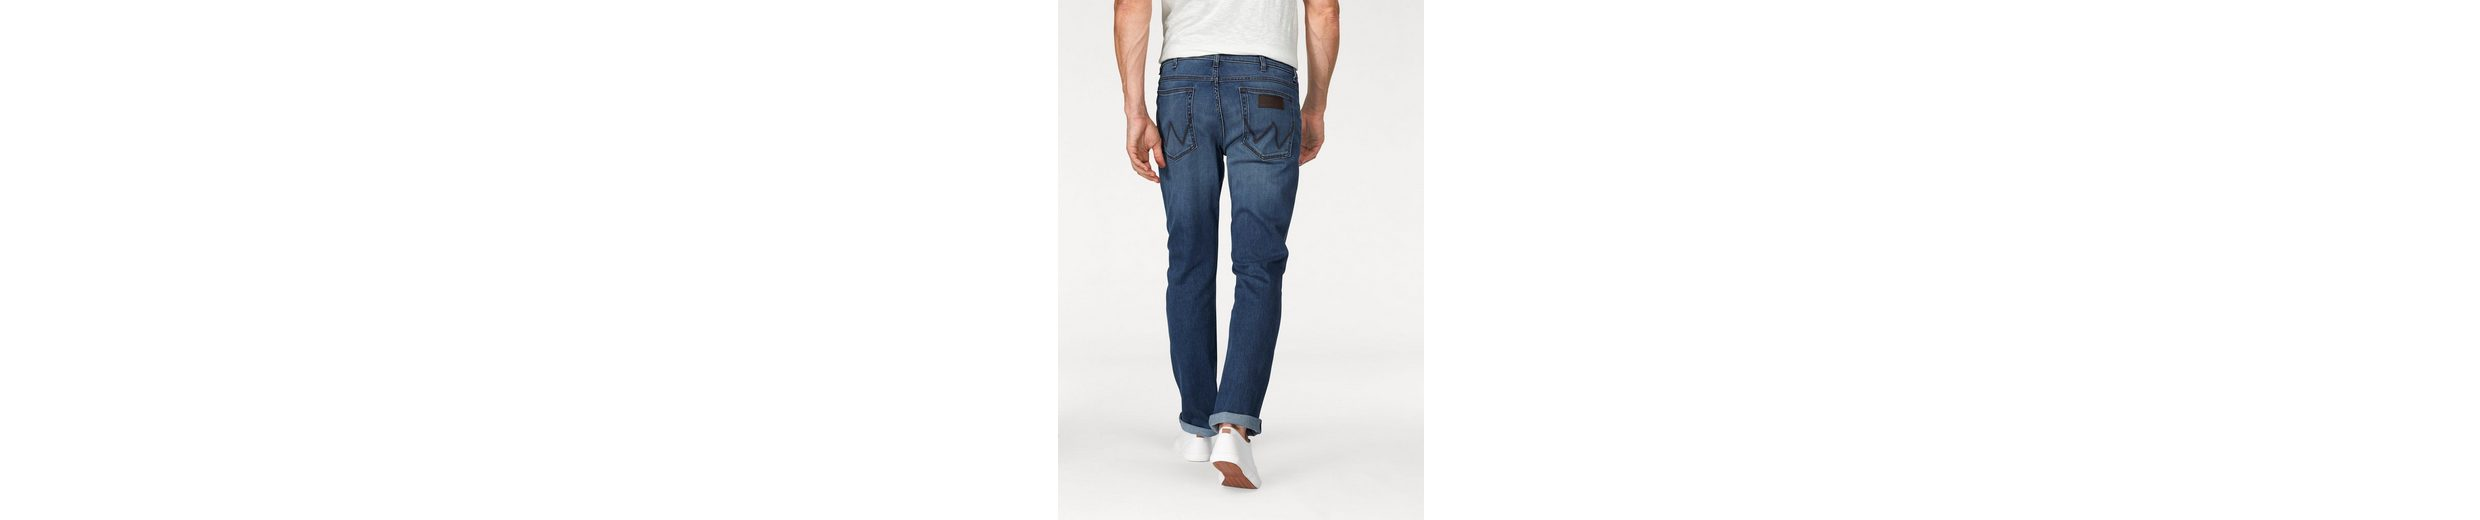 Wrangler Stretch-Jeans Greensboro, Regular Straight